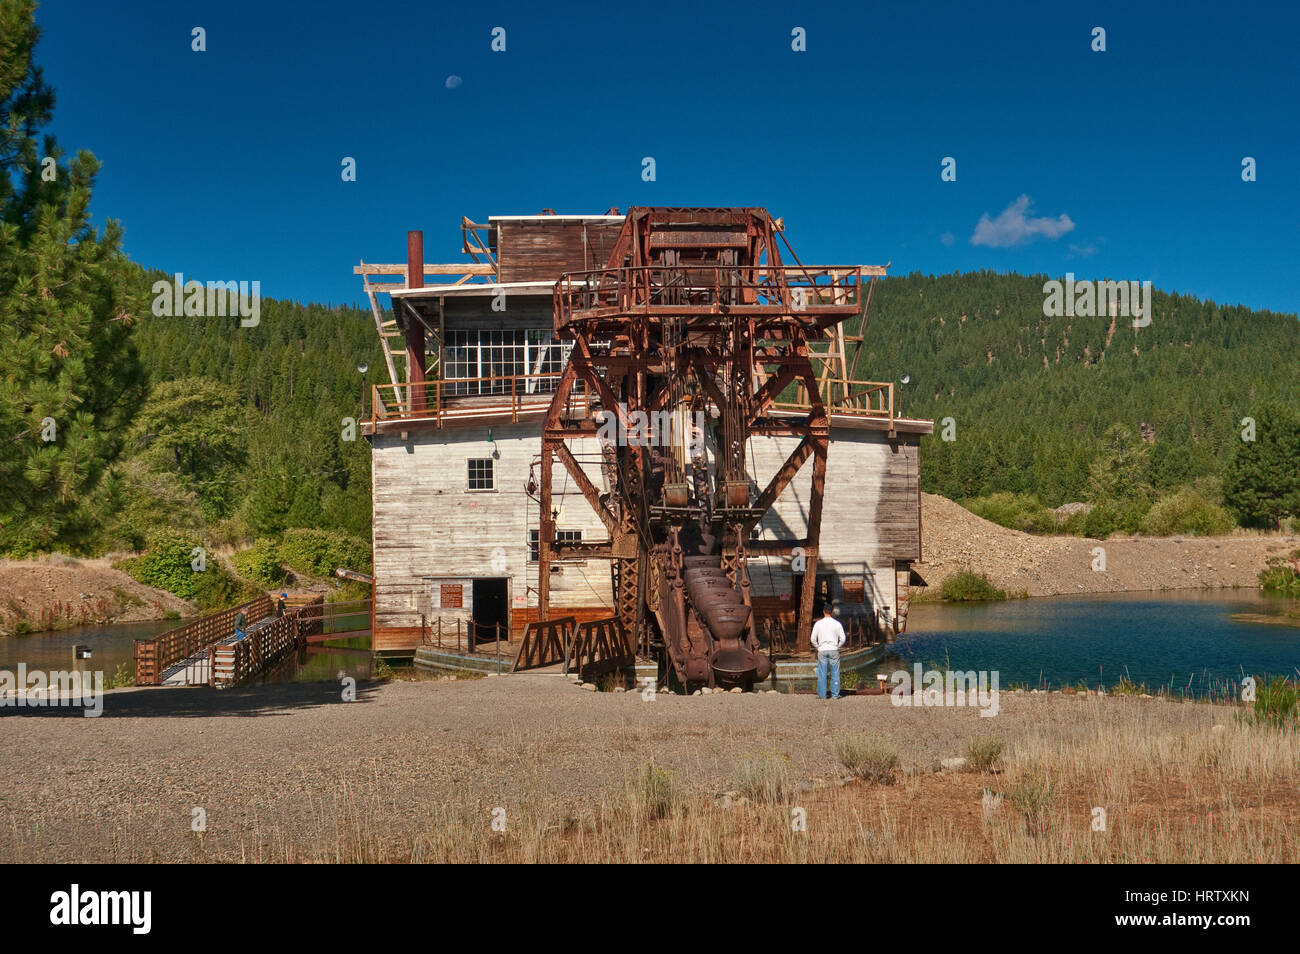 Historic gold mining dredge in Sumpter in Blue Mountains, Oregon, USA - Stock Image